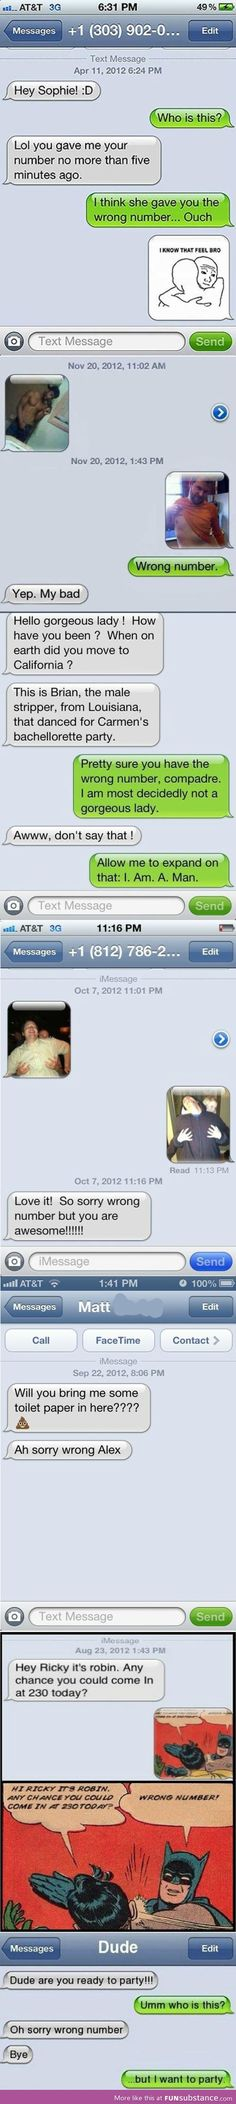 Wrong number compilation! But I want to party:( lol sorry dude